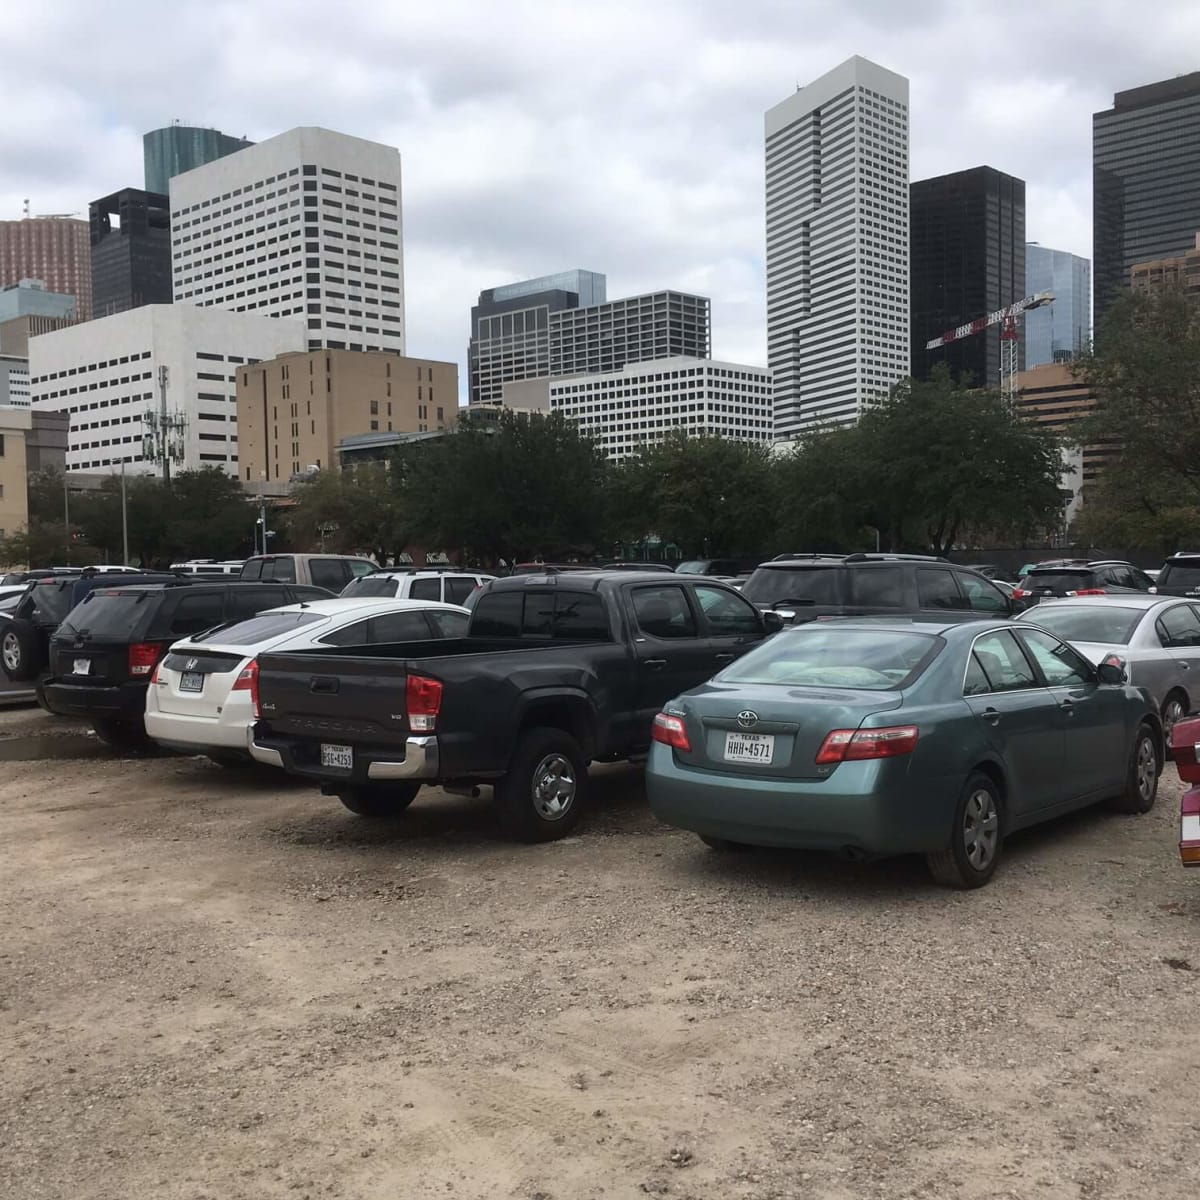 ESPN site for Super Bowl coverage in downtown Houston